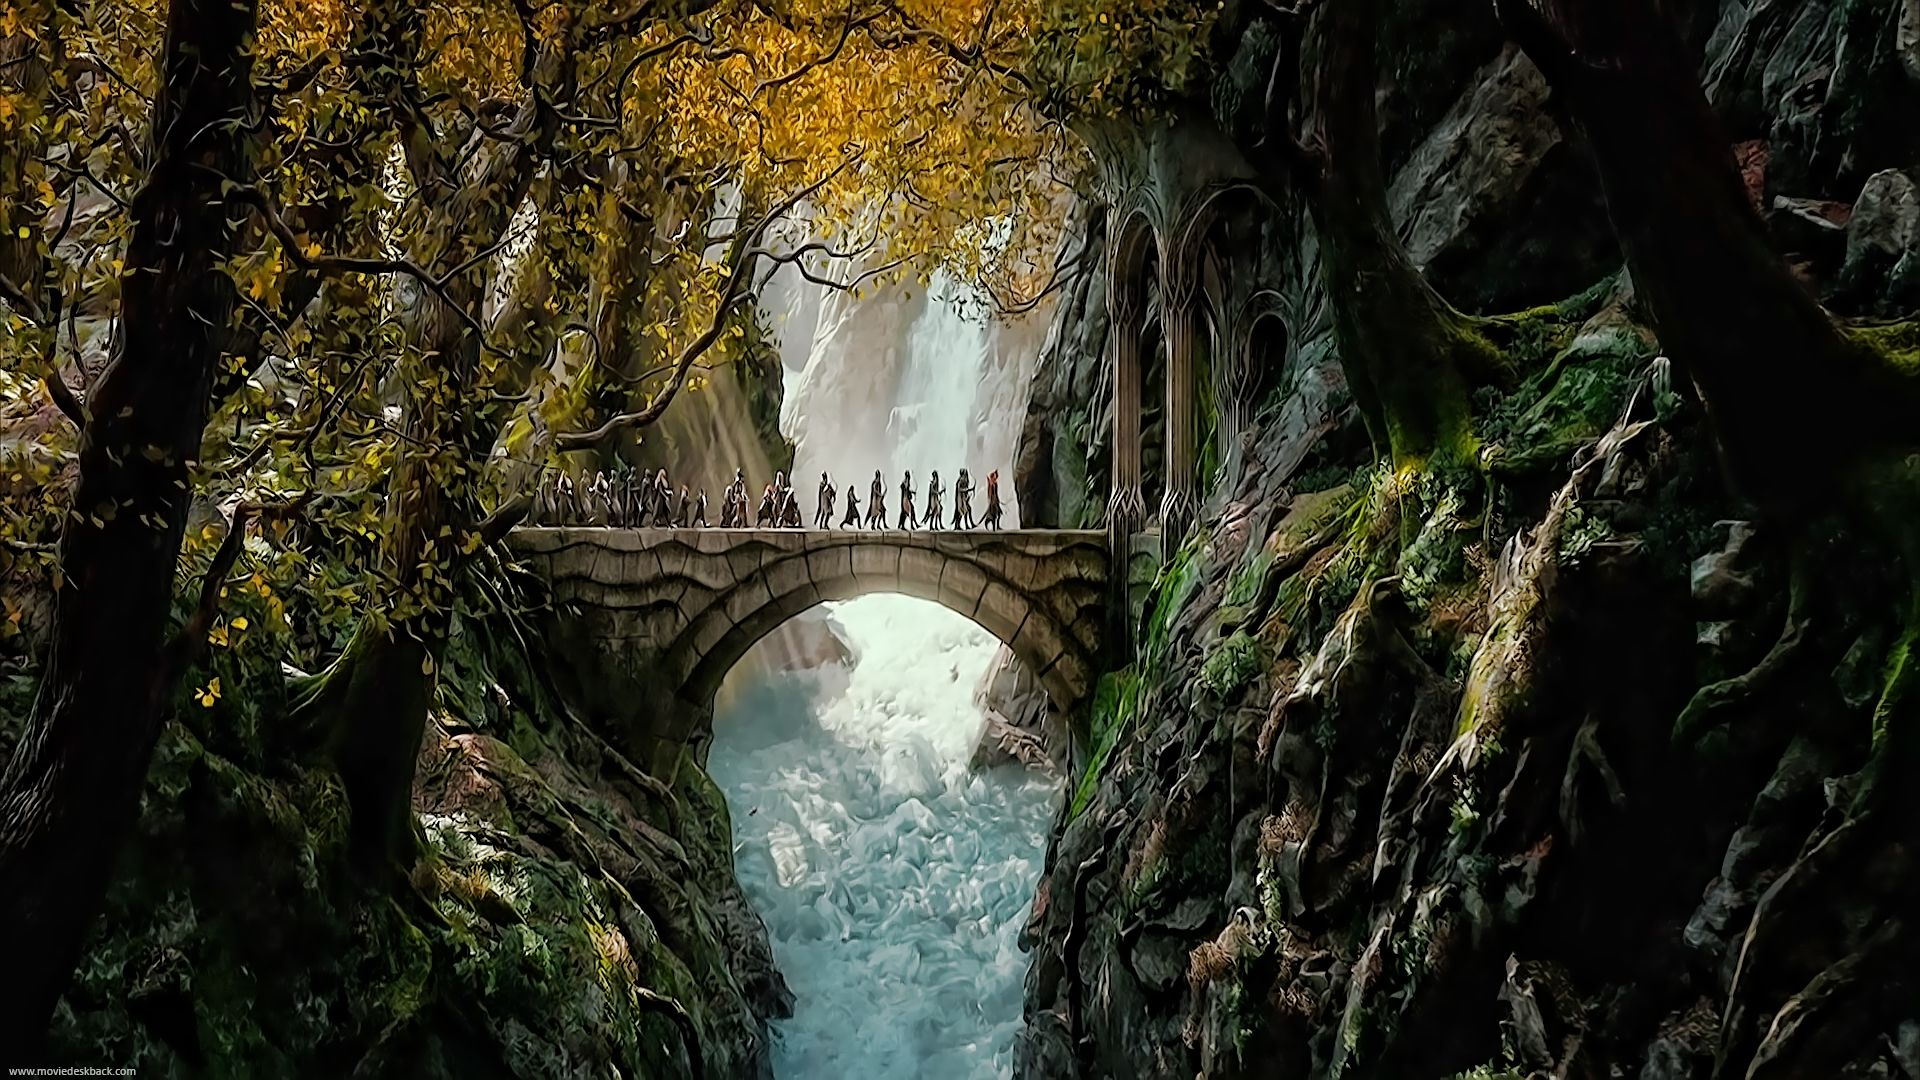 Alpha Coders Wallpaper Abyss Movie The Hobbit The Desolation Of Smaug The Hobbit Desolation Of Smaug Hobbit Desolation Of Smaug